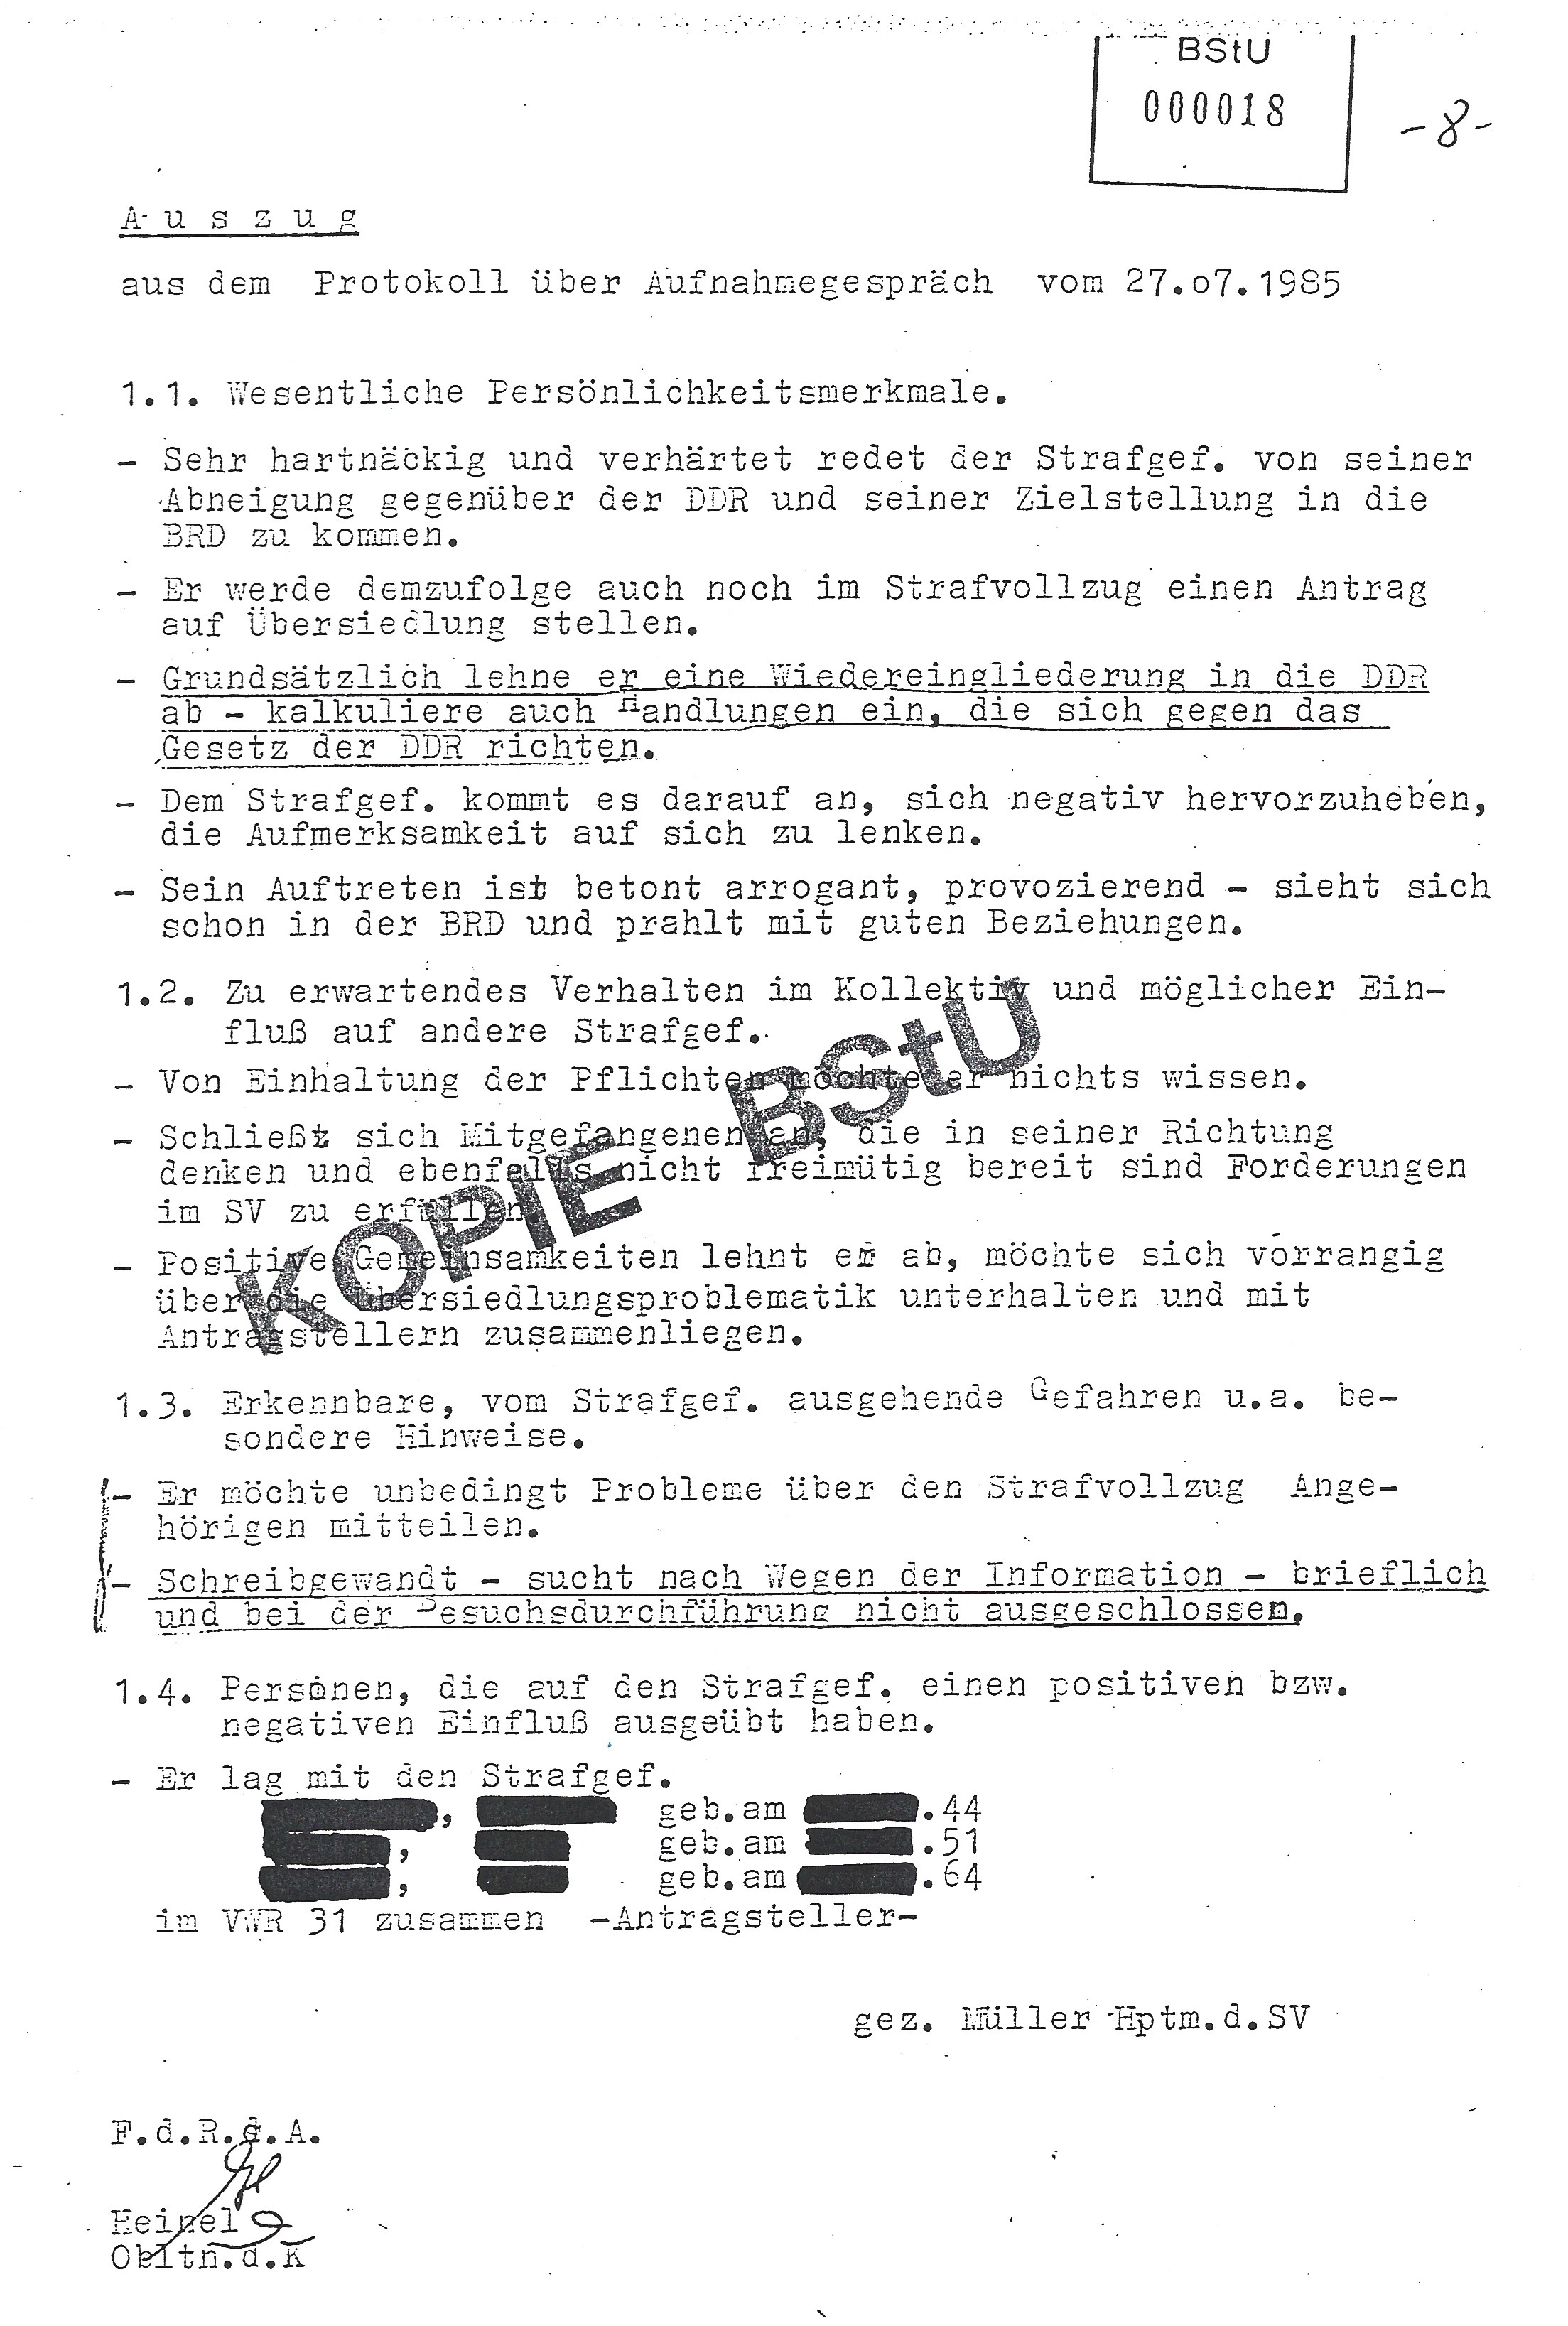 """Interrogation and introduction protocol from my Stasi files that I optained in the 90s.   """"Very stubborn...rejects re-integration...might act against the state laws again...wants to be negative...explicitly arrogant and provocative...rejects the order in the prison...only cares about like minded people and topics...eloquent...might try to report about the facility and issues..."""""""